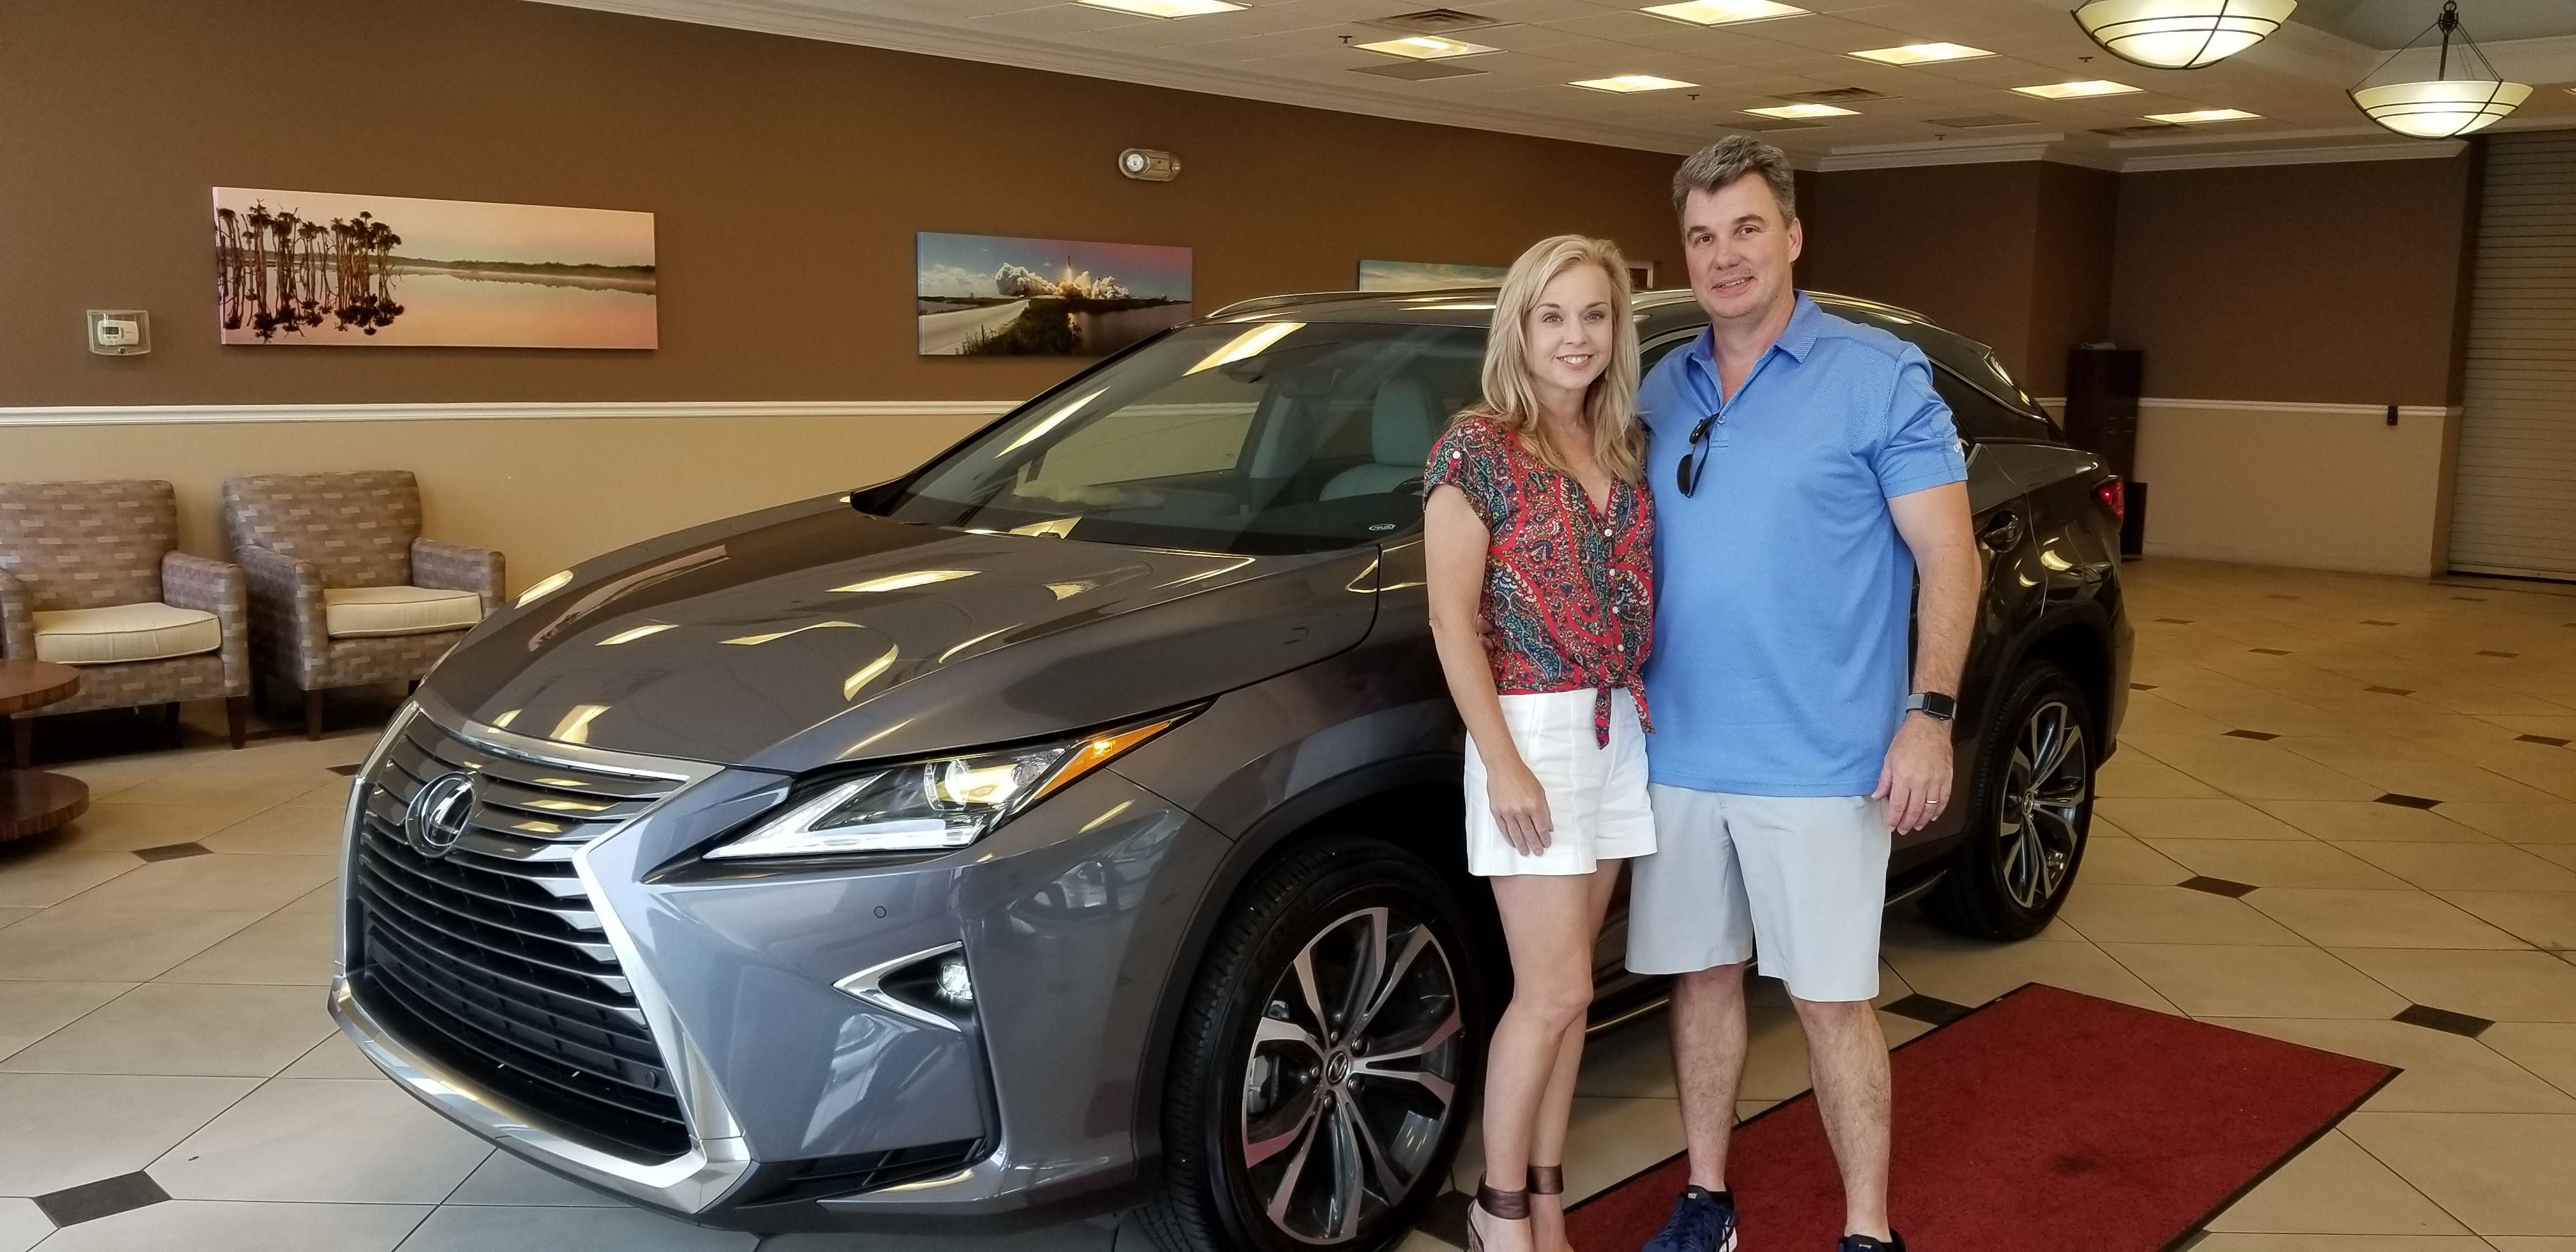 Congratulations To All Of Our August Customers From Our Our Team Lexus Of Orangepark Thanks For Choosing The Fieldsauto Group Orange Park Lexus Elkhart